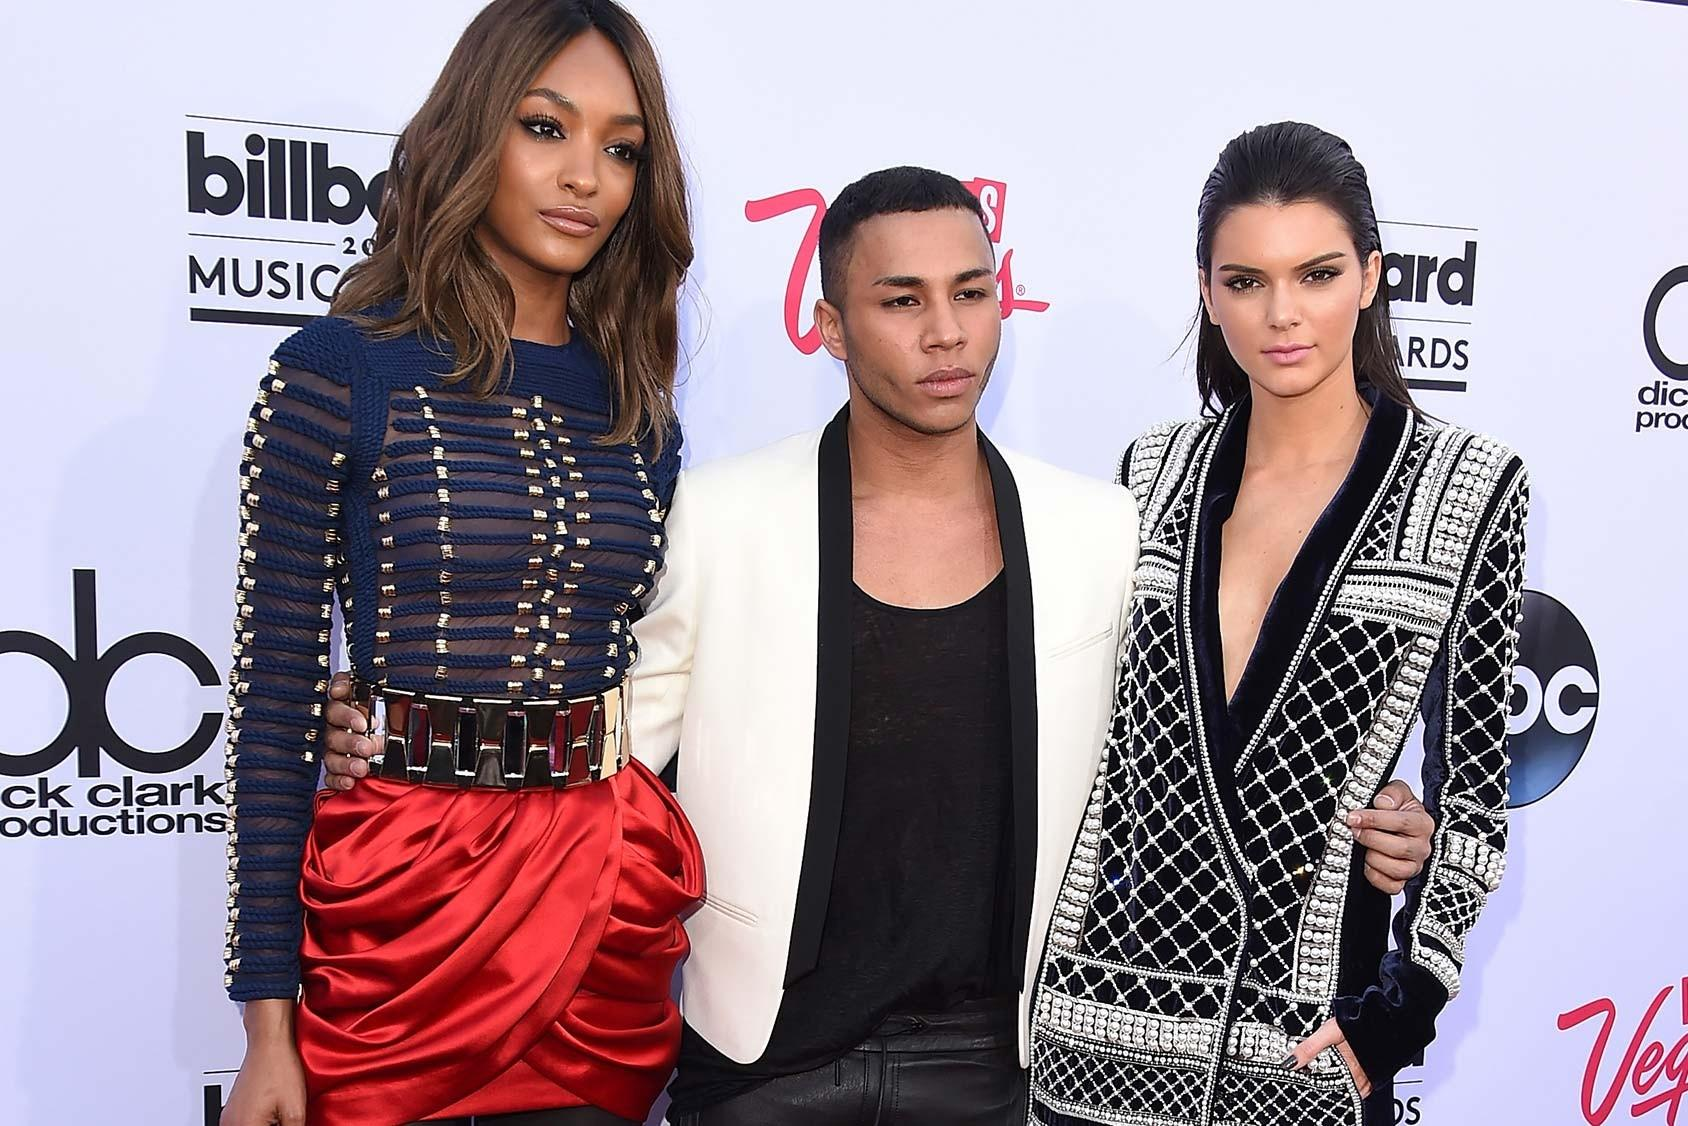 Olivier Rousteing, Balmain's creative director, poses with Kendall Jenner and Jourdan Dunn, following the announcement of the Balmain and H&M collaboration